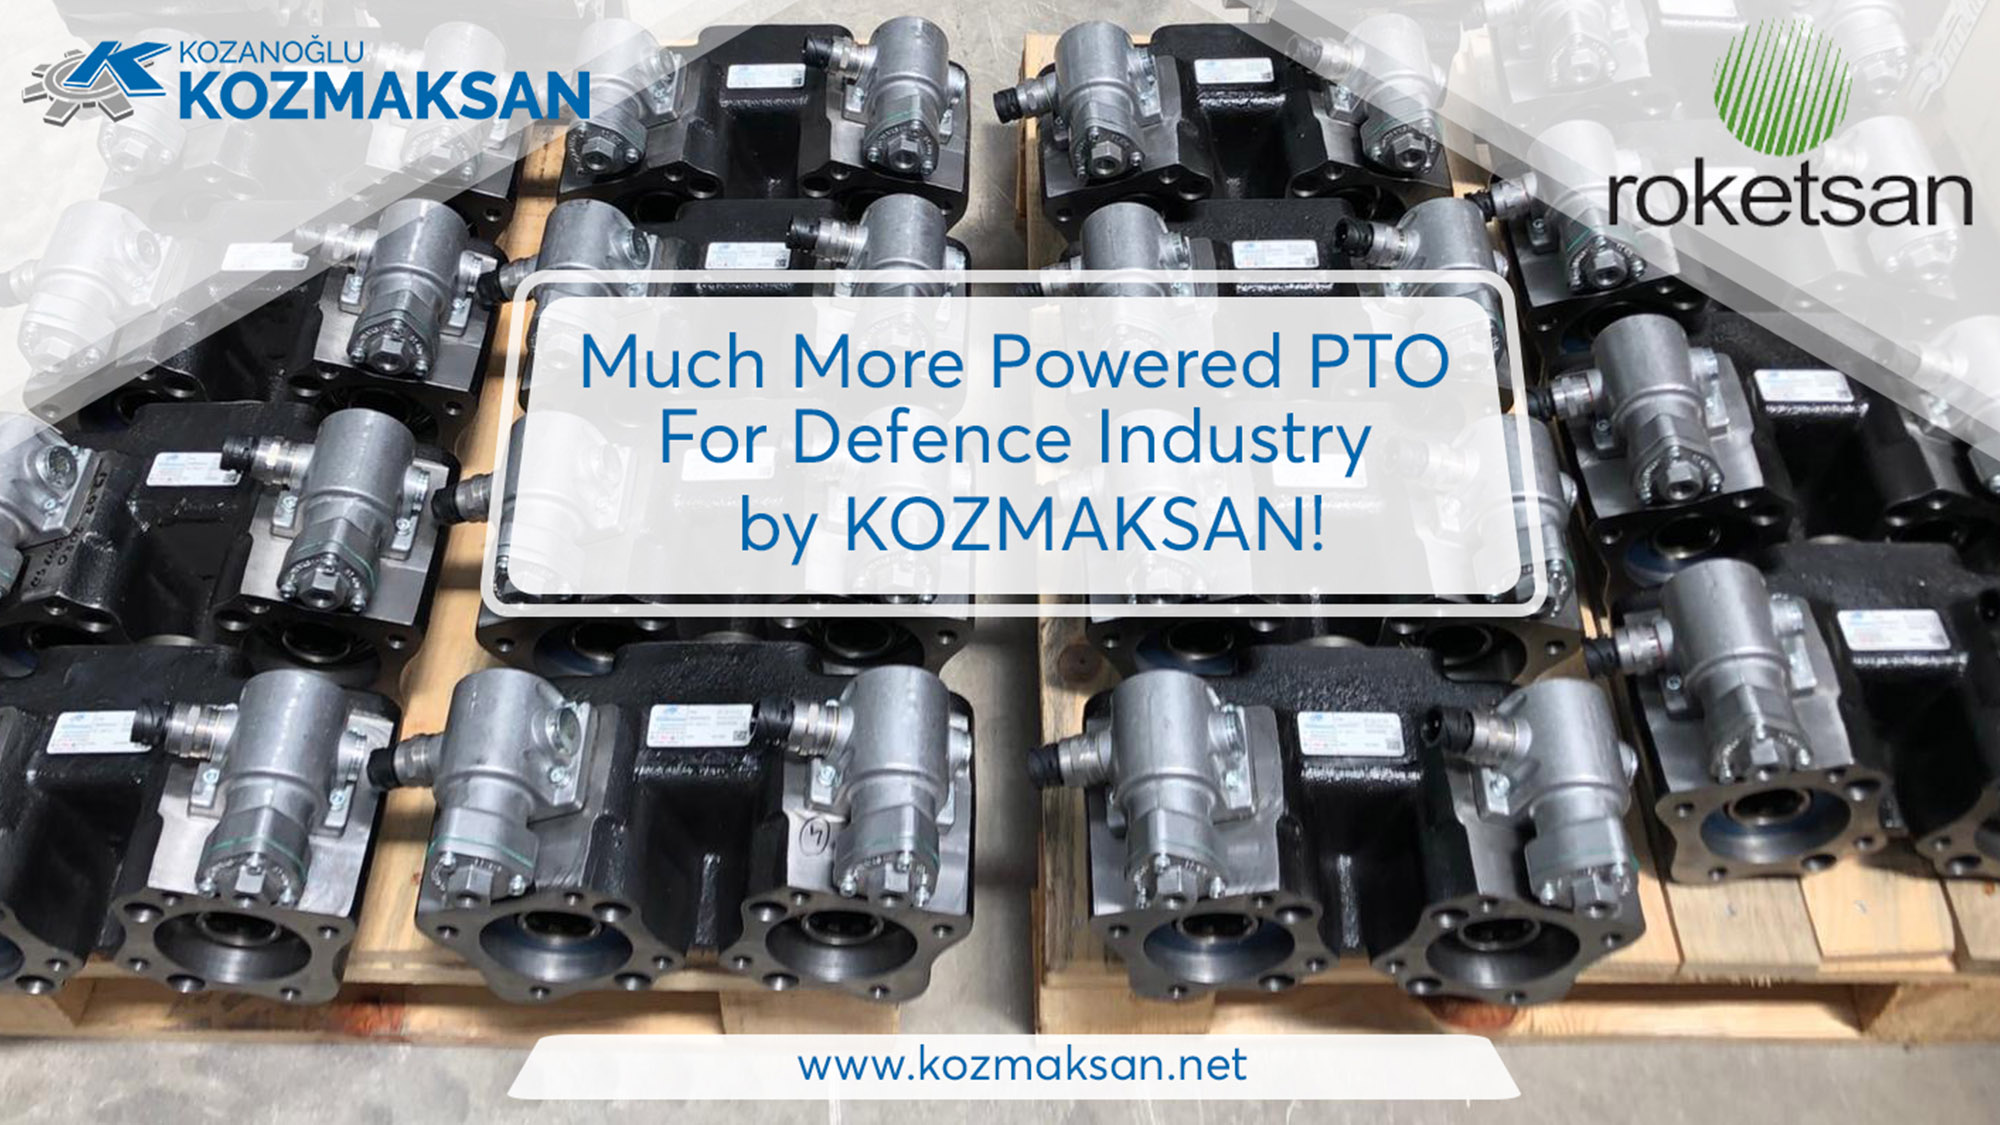 Much More Powered PTO For Defence Industry by KOZMAKSAN!